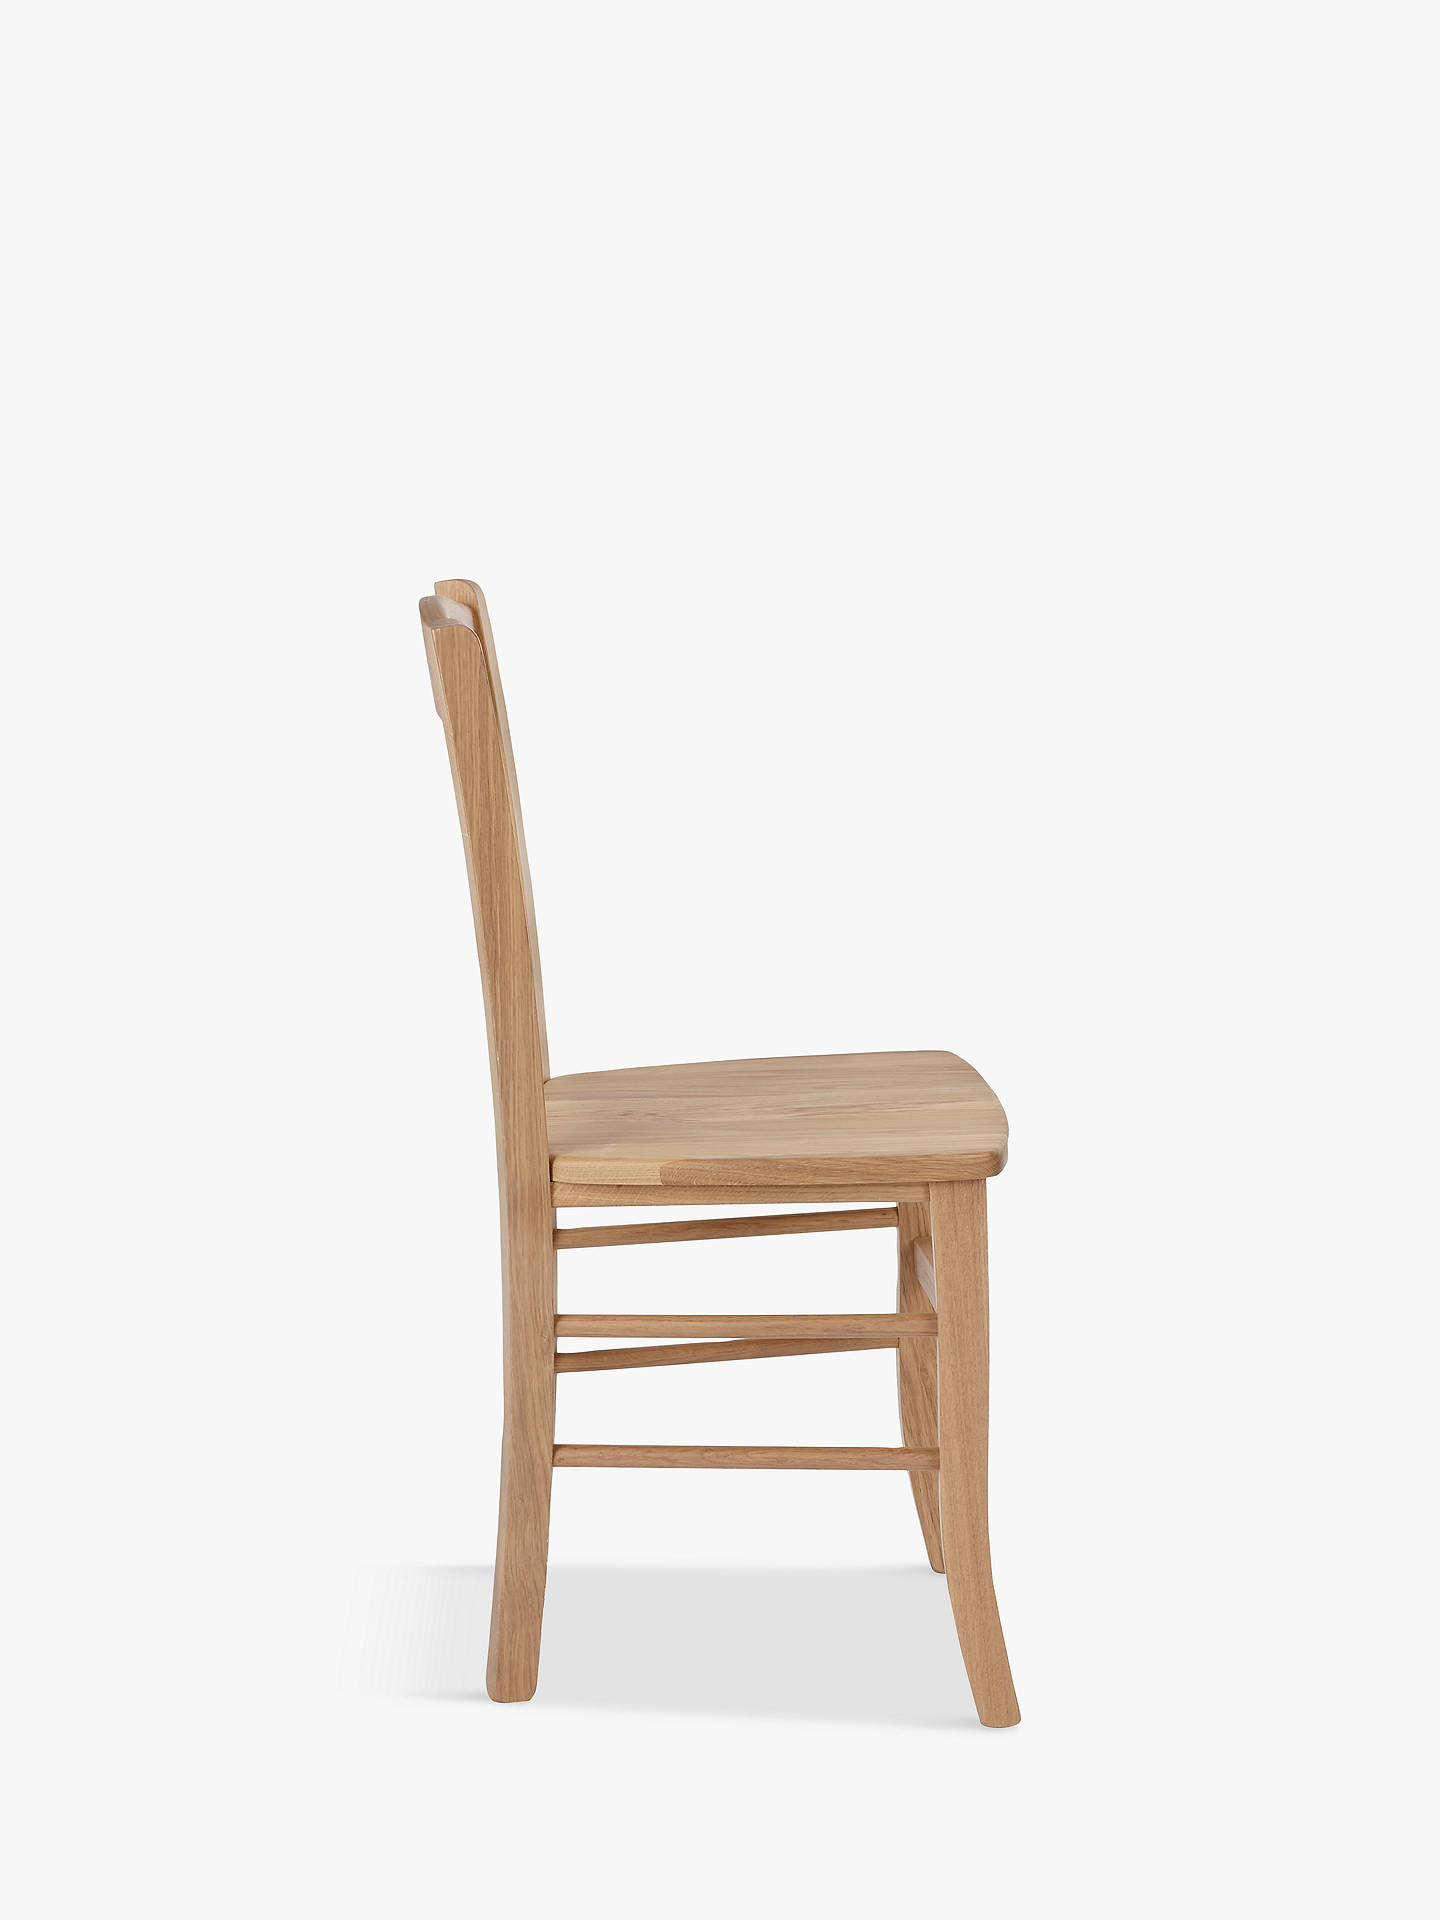 BuyJohn Lewis & Partners Clayton Dining Chairs, Set of 2, Oak Online at johnlewis.com